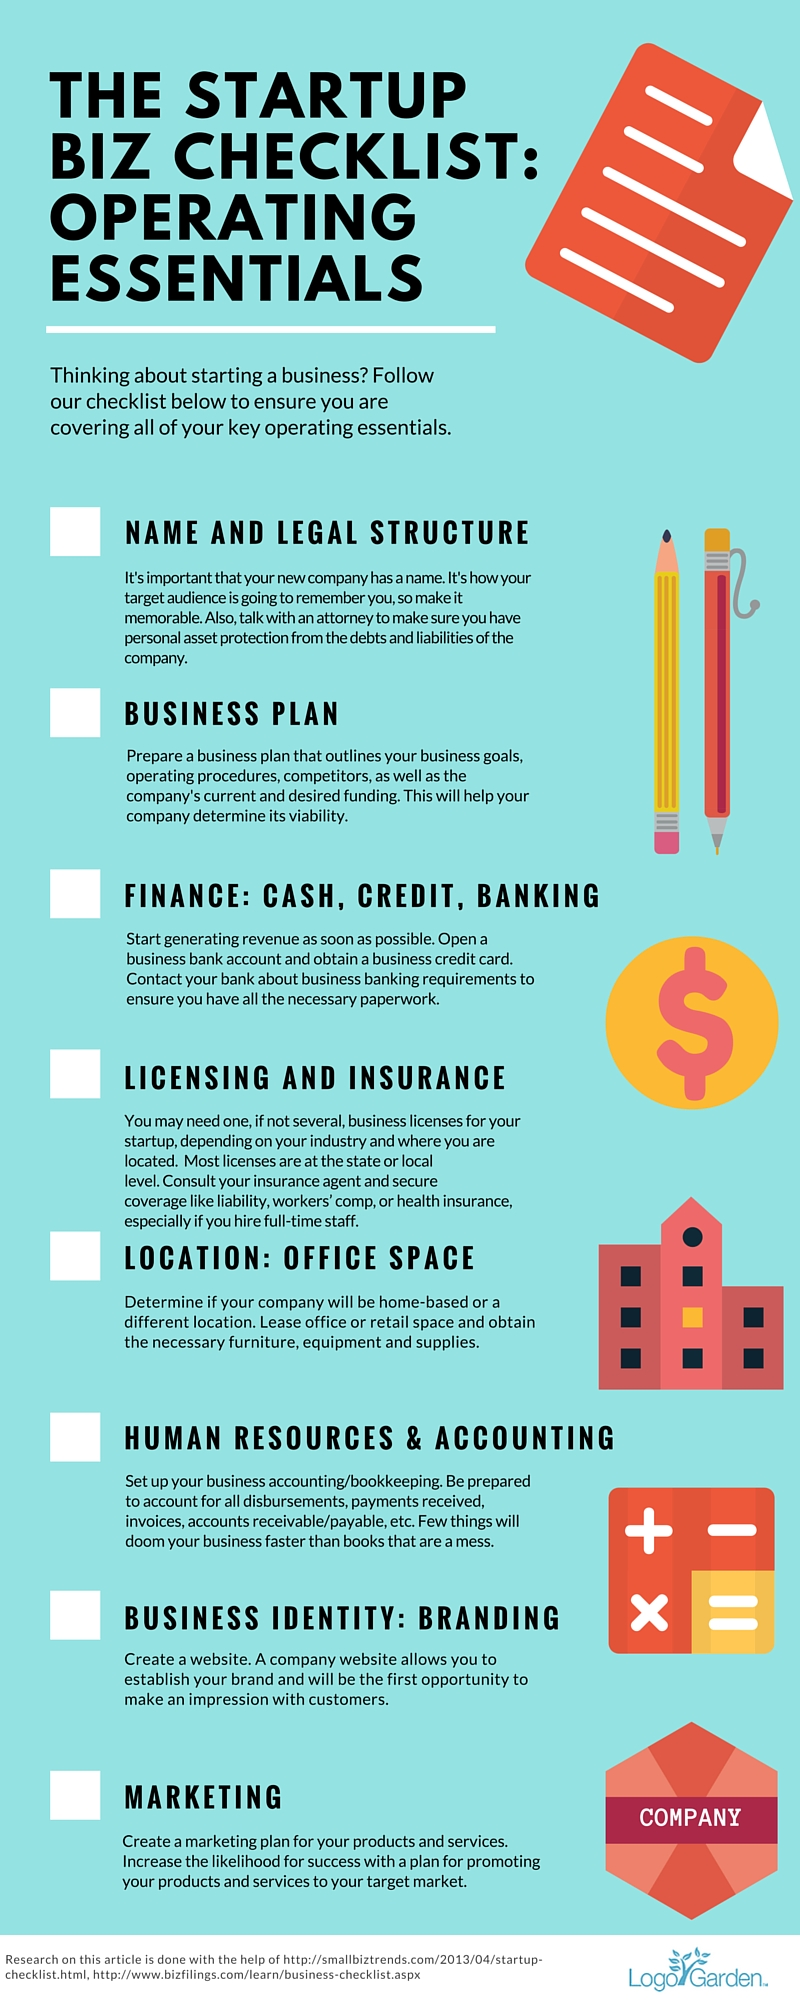 Infographic for a startup business checklist.